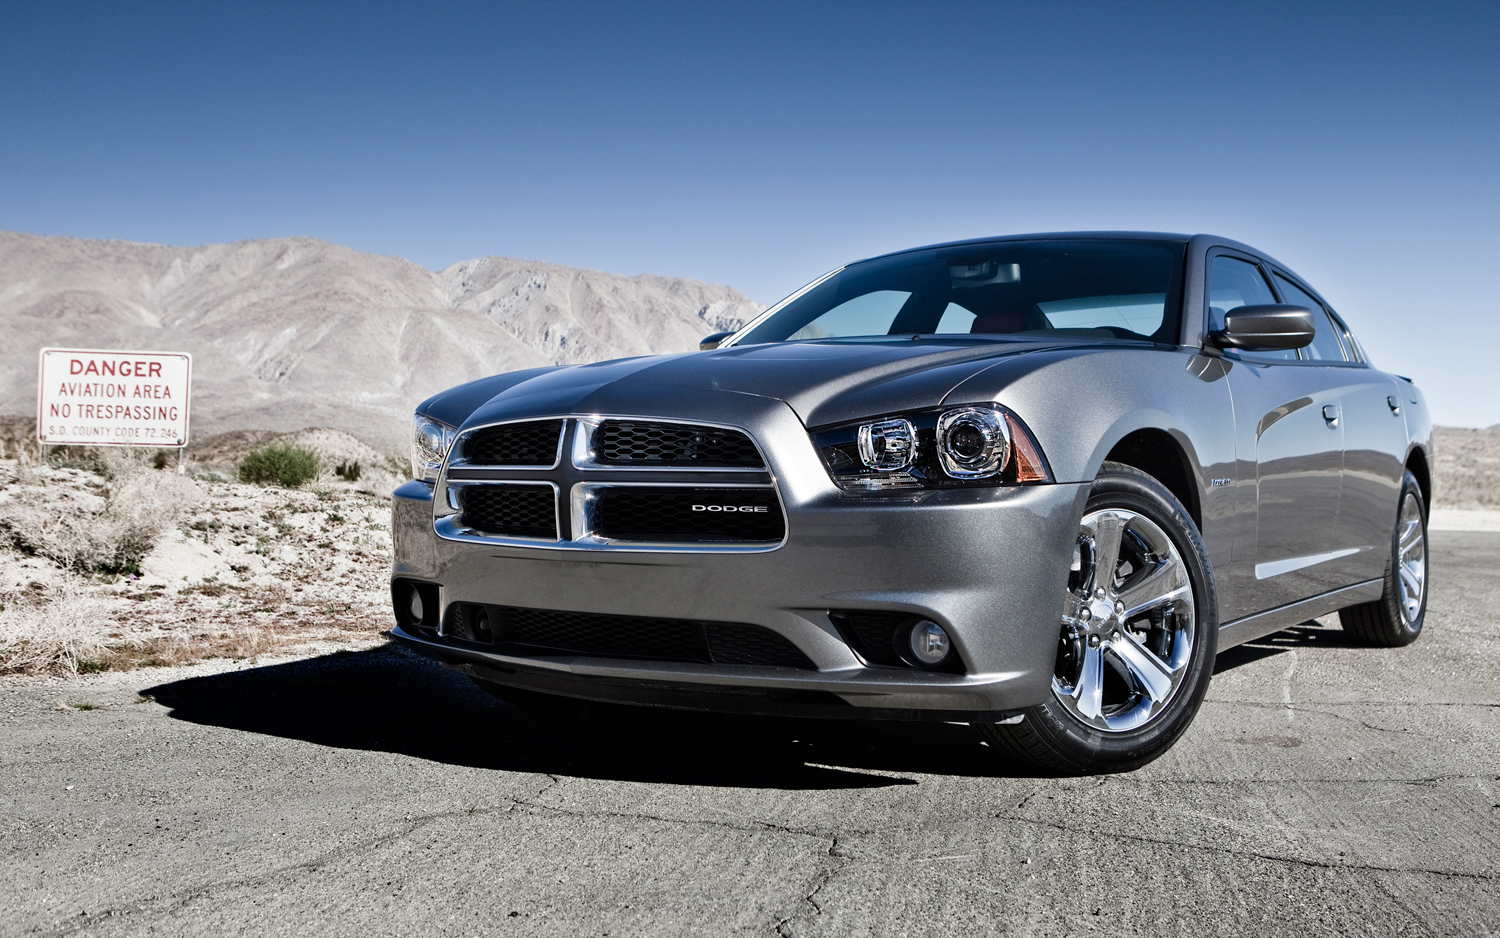 Chrysler 300 Mpg >> 2012 Chrysler 300 Dodge Charger Rated At 19 31 Mpg With 8 Speed